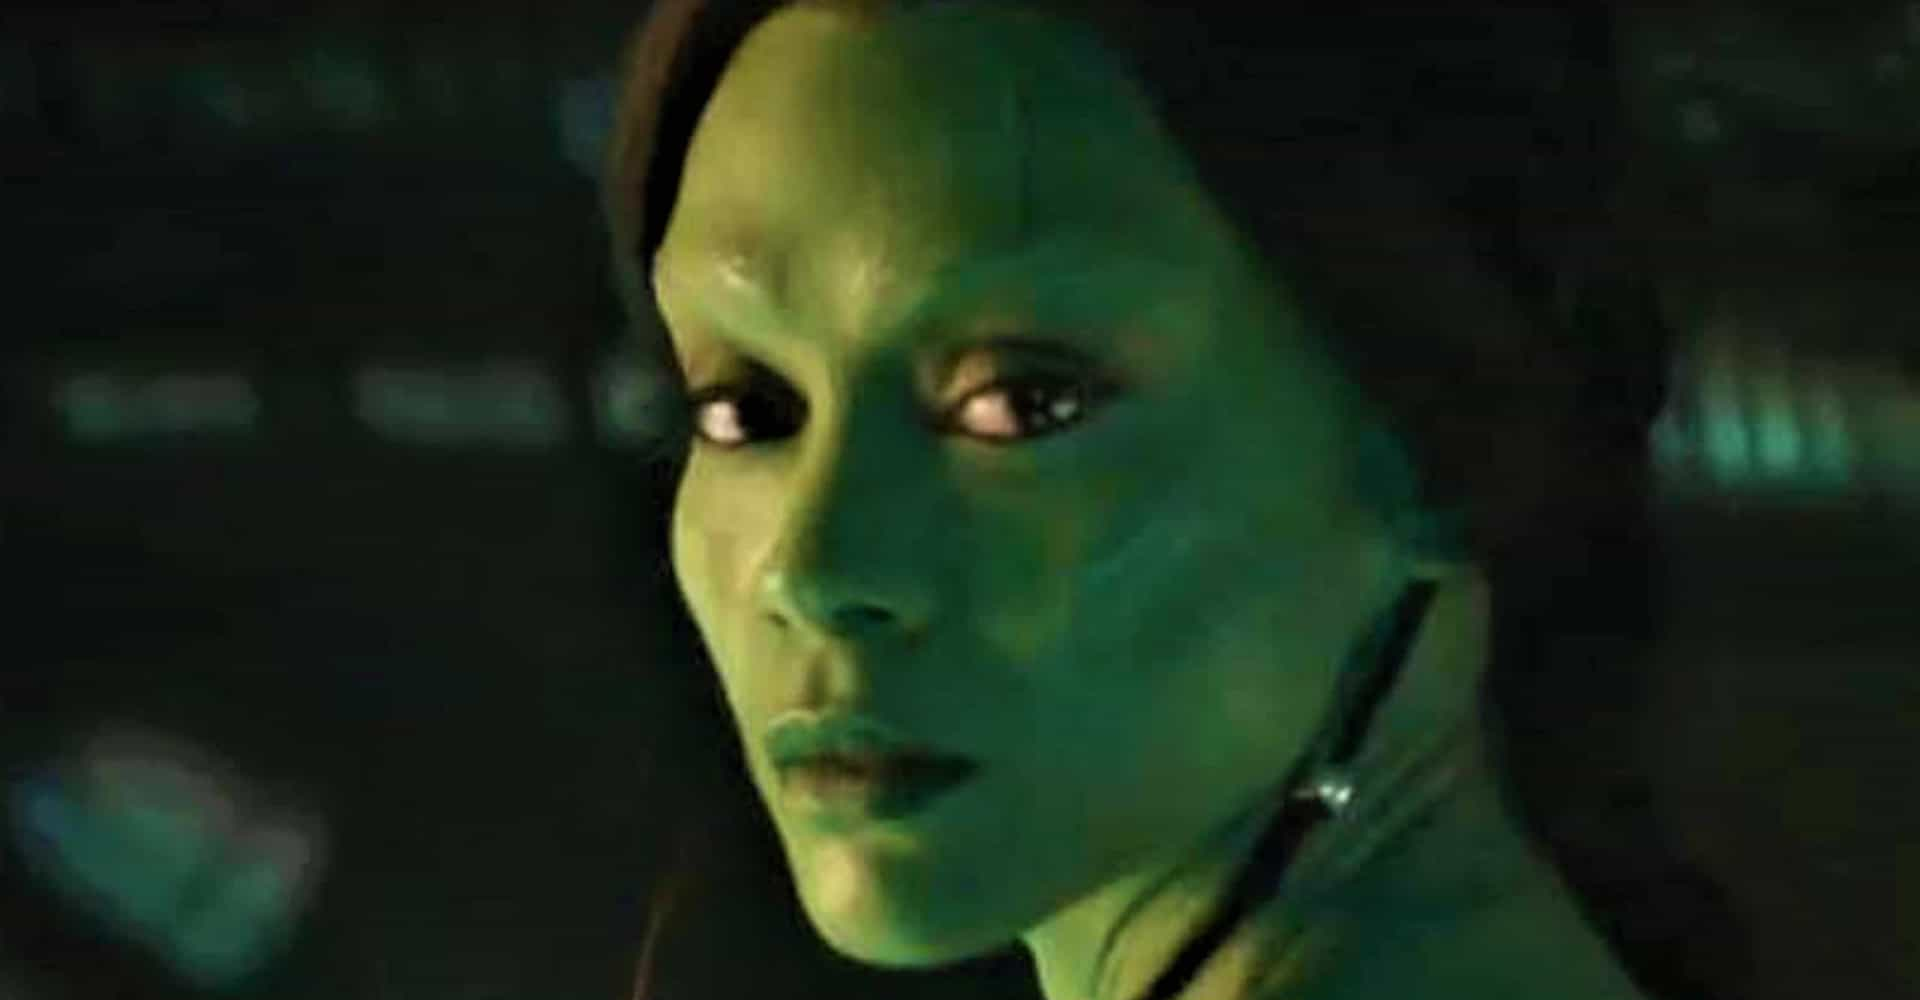 Zoe Saldana: the queen of film franchises